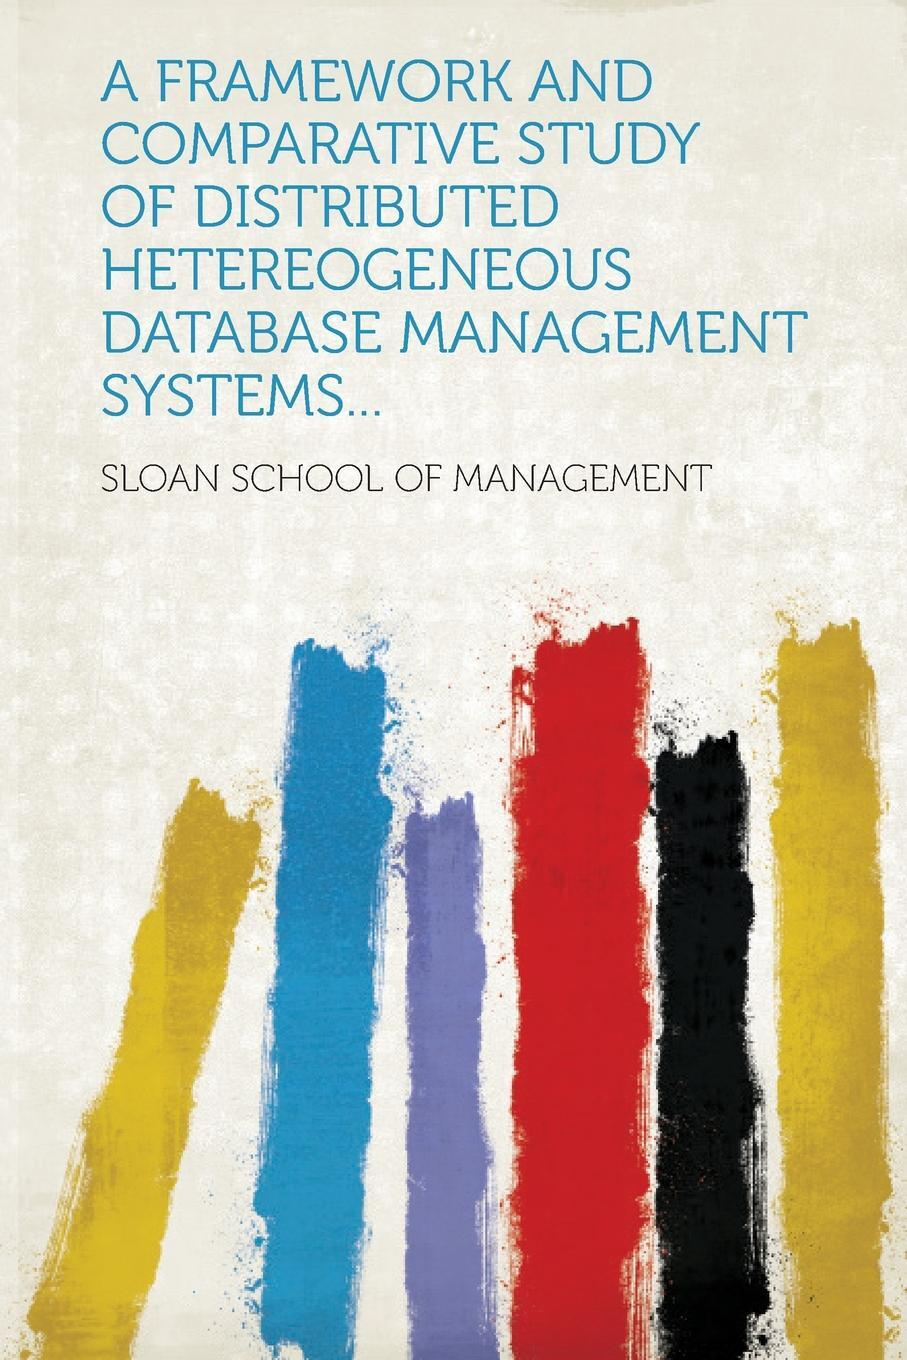 A Framework and Comparative Study of Distributed Hetereogeneous Database Management Systems...